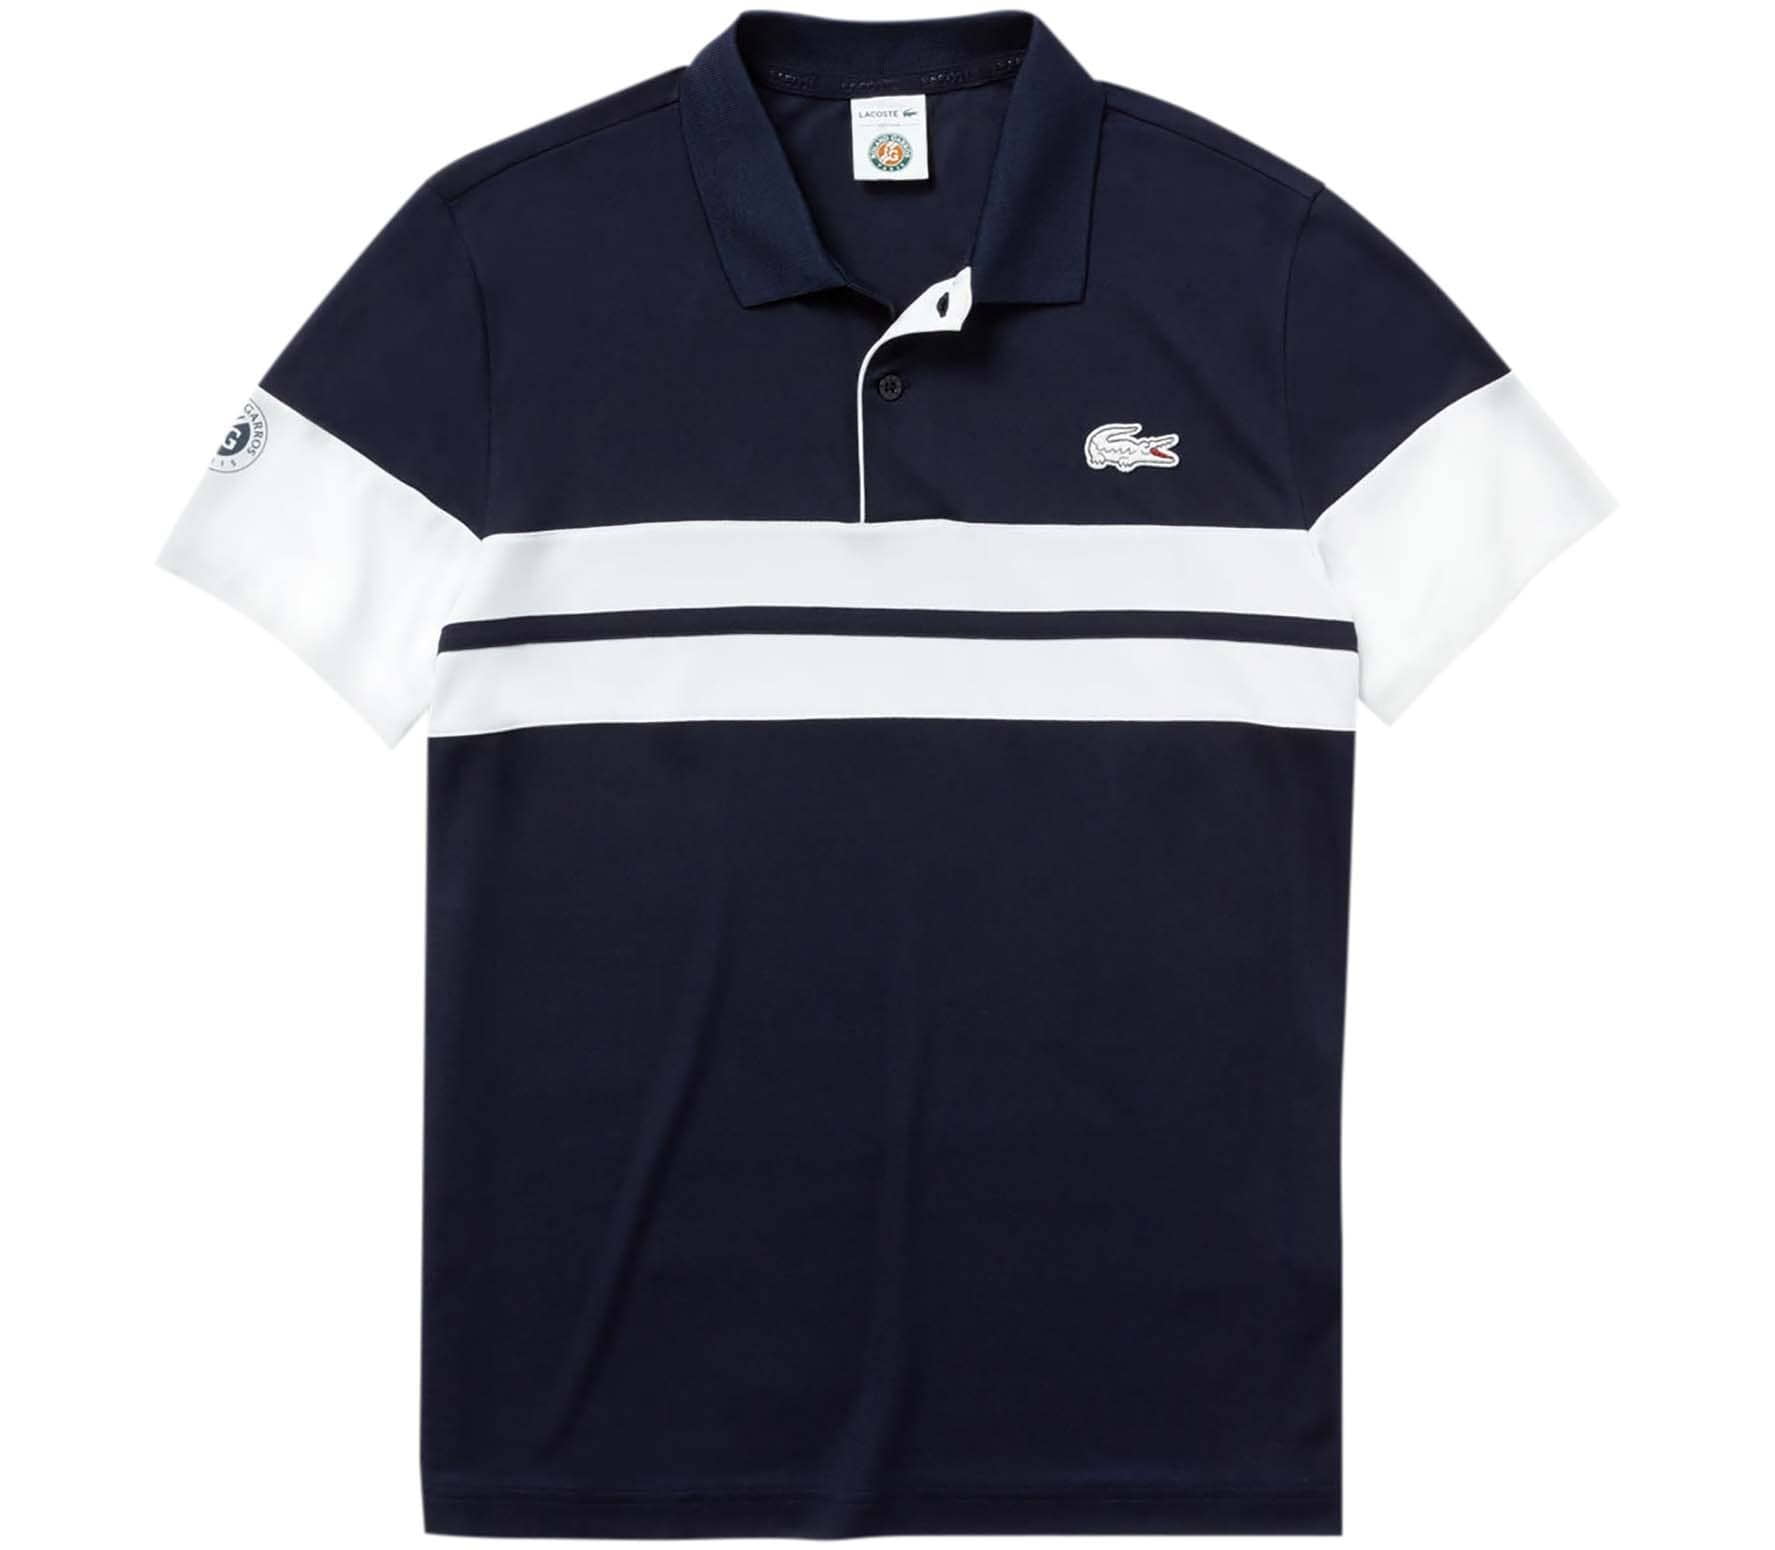 Lacoste men's tennis top Herren